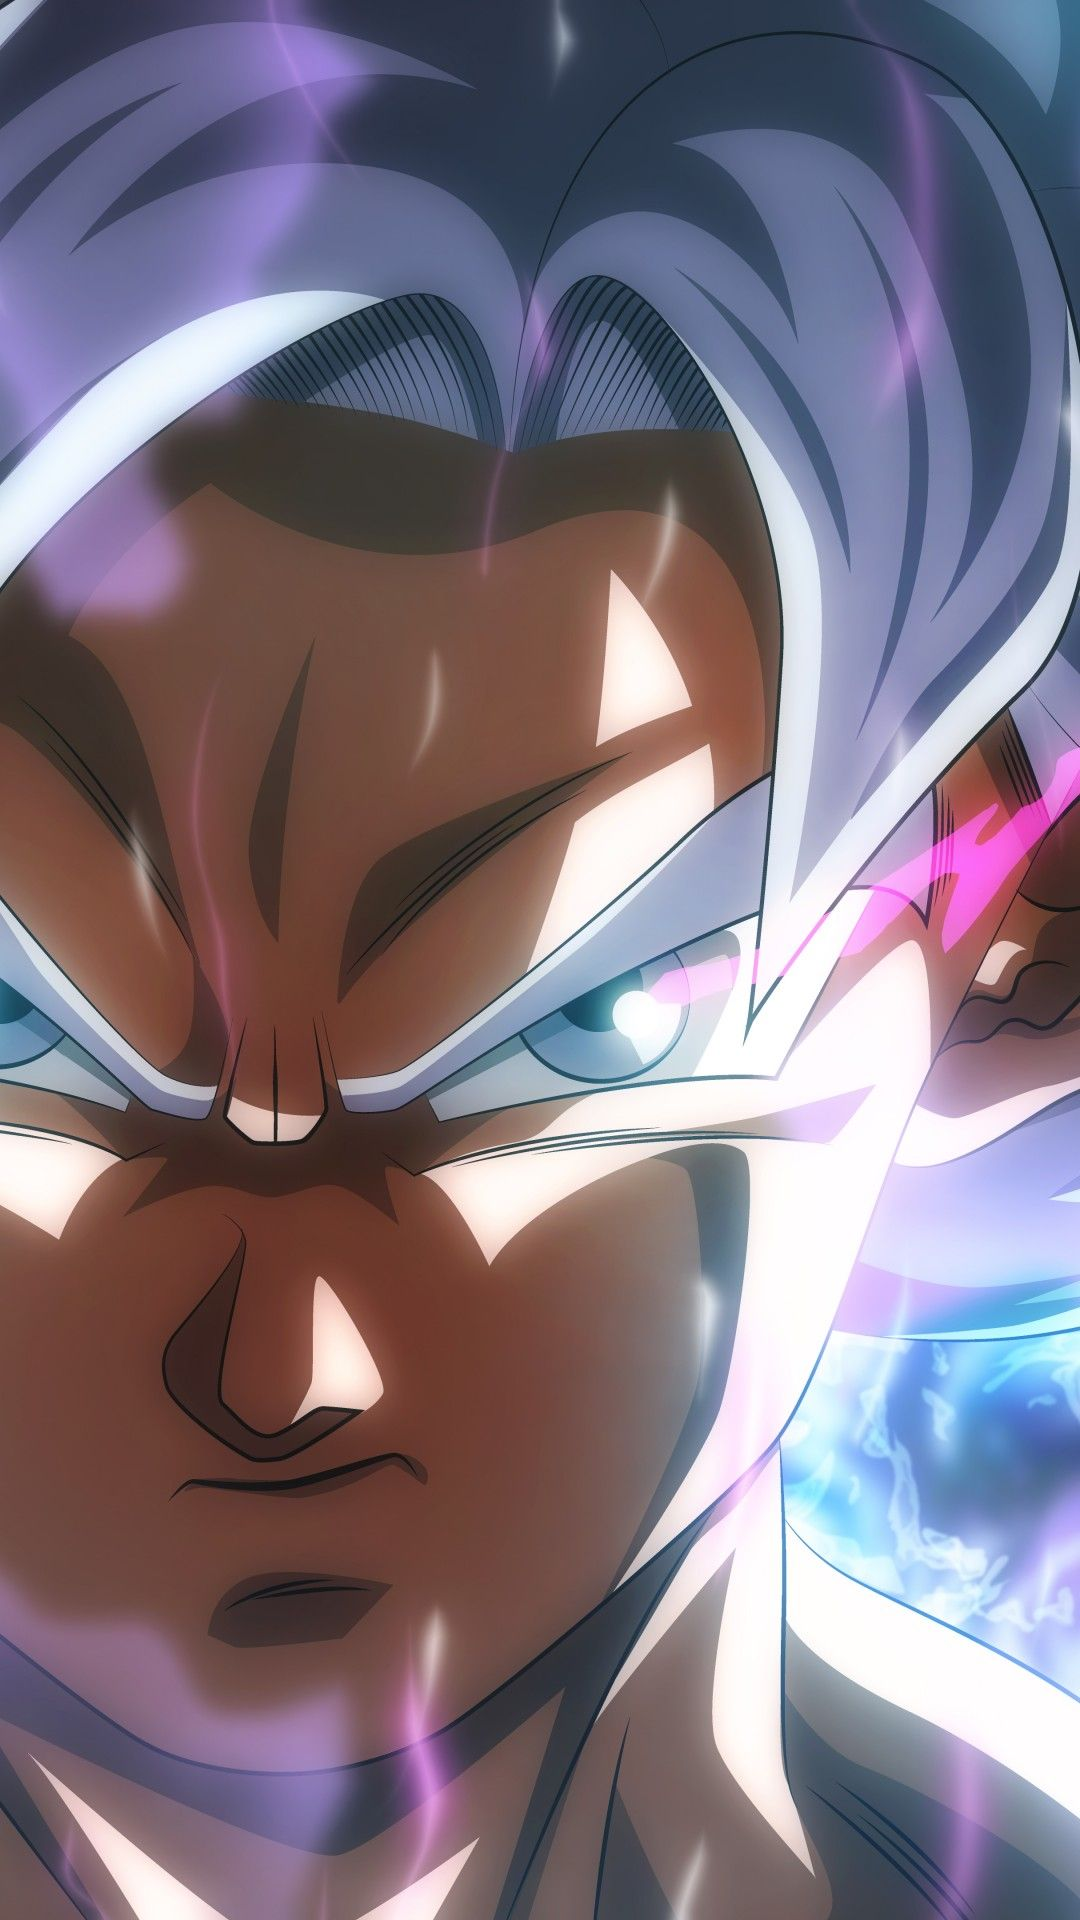 Free Ultra Instinct Goku Dragon Ball Anime Computer Desktop Wallpapers Pictures Dragon Ball Super Wallpapers Dragon Ball Wallpapers Anime Dragon Ball Super